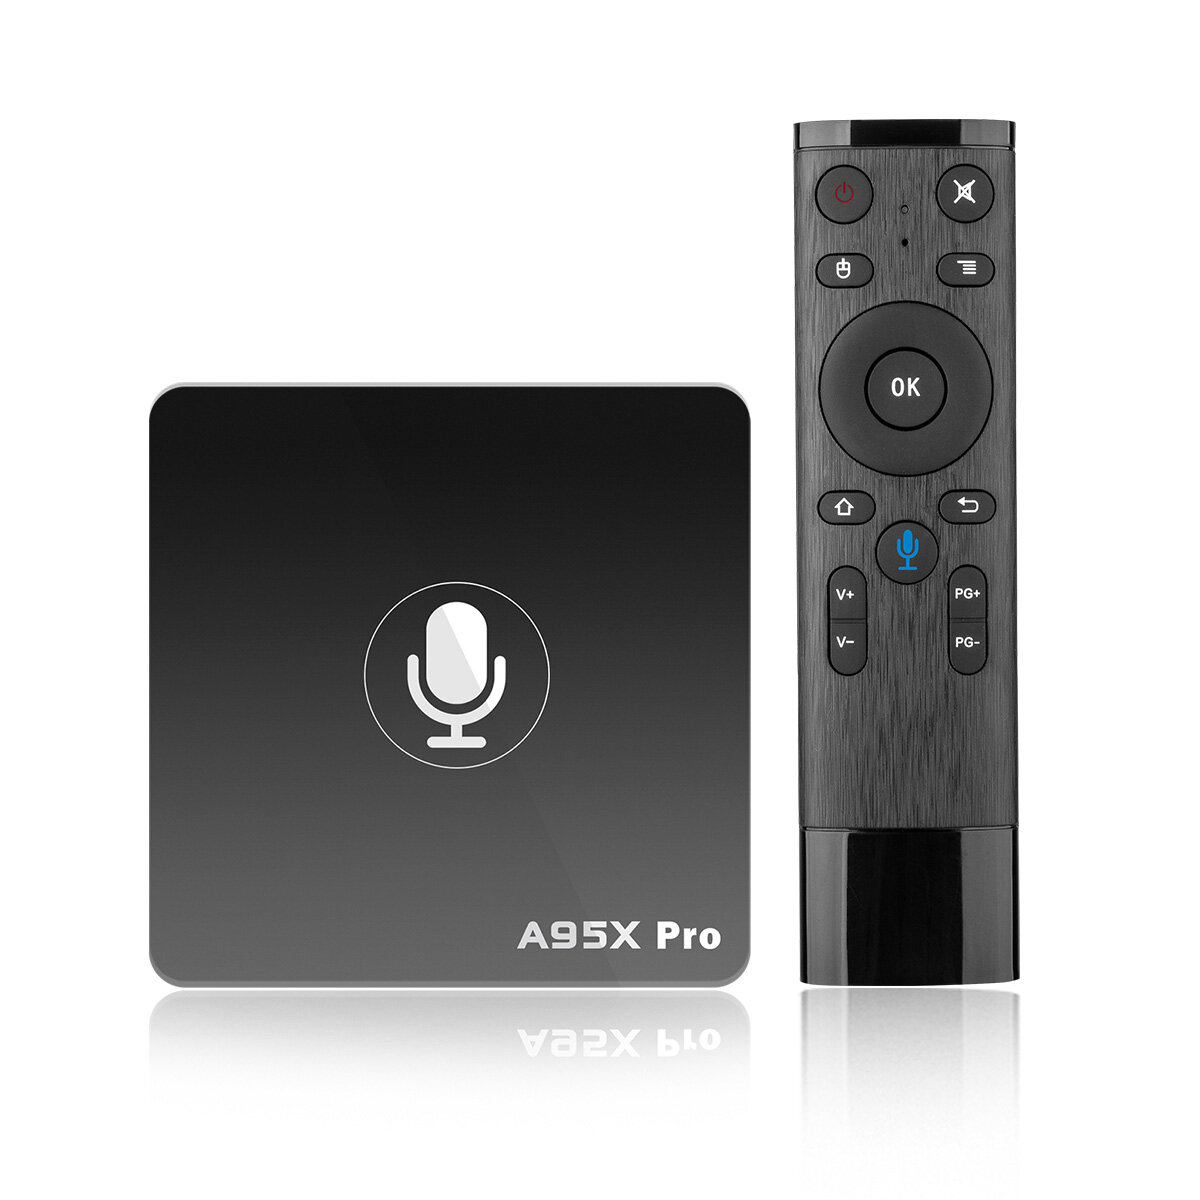 A95X Pro Amlogic S905W 2GB RAM 16GB ROM Android TV Scatola con controllo vocale